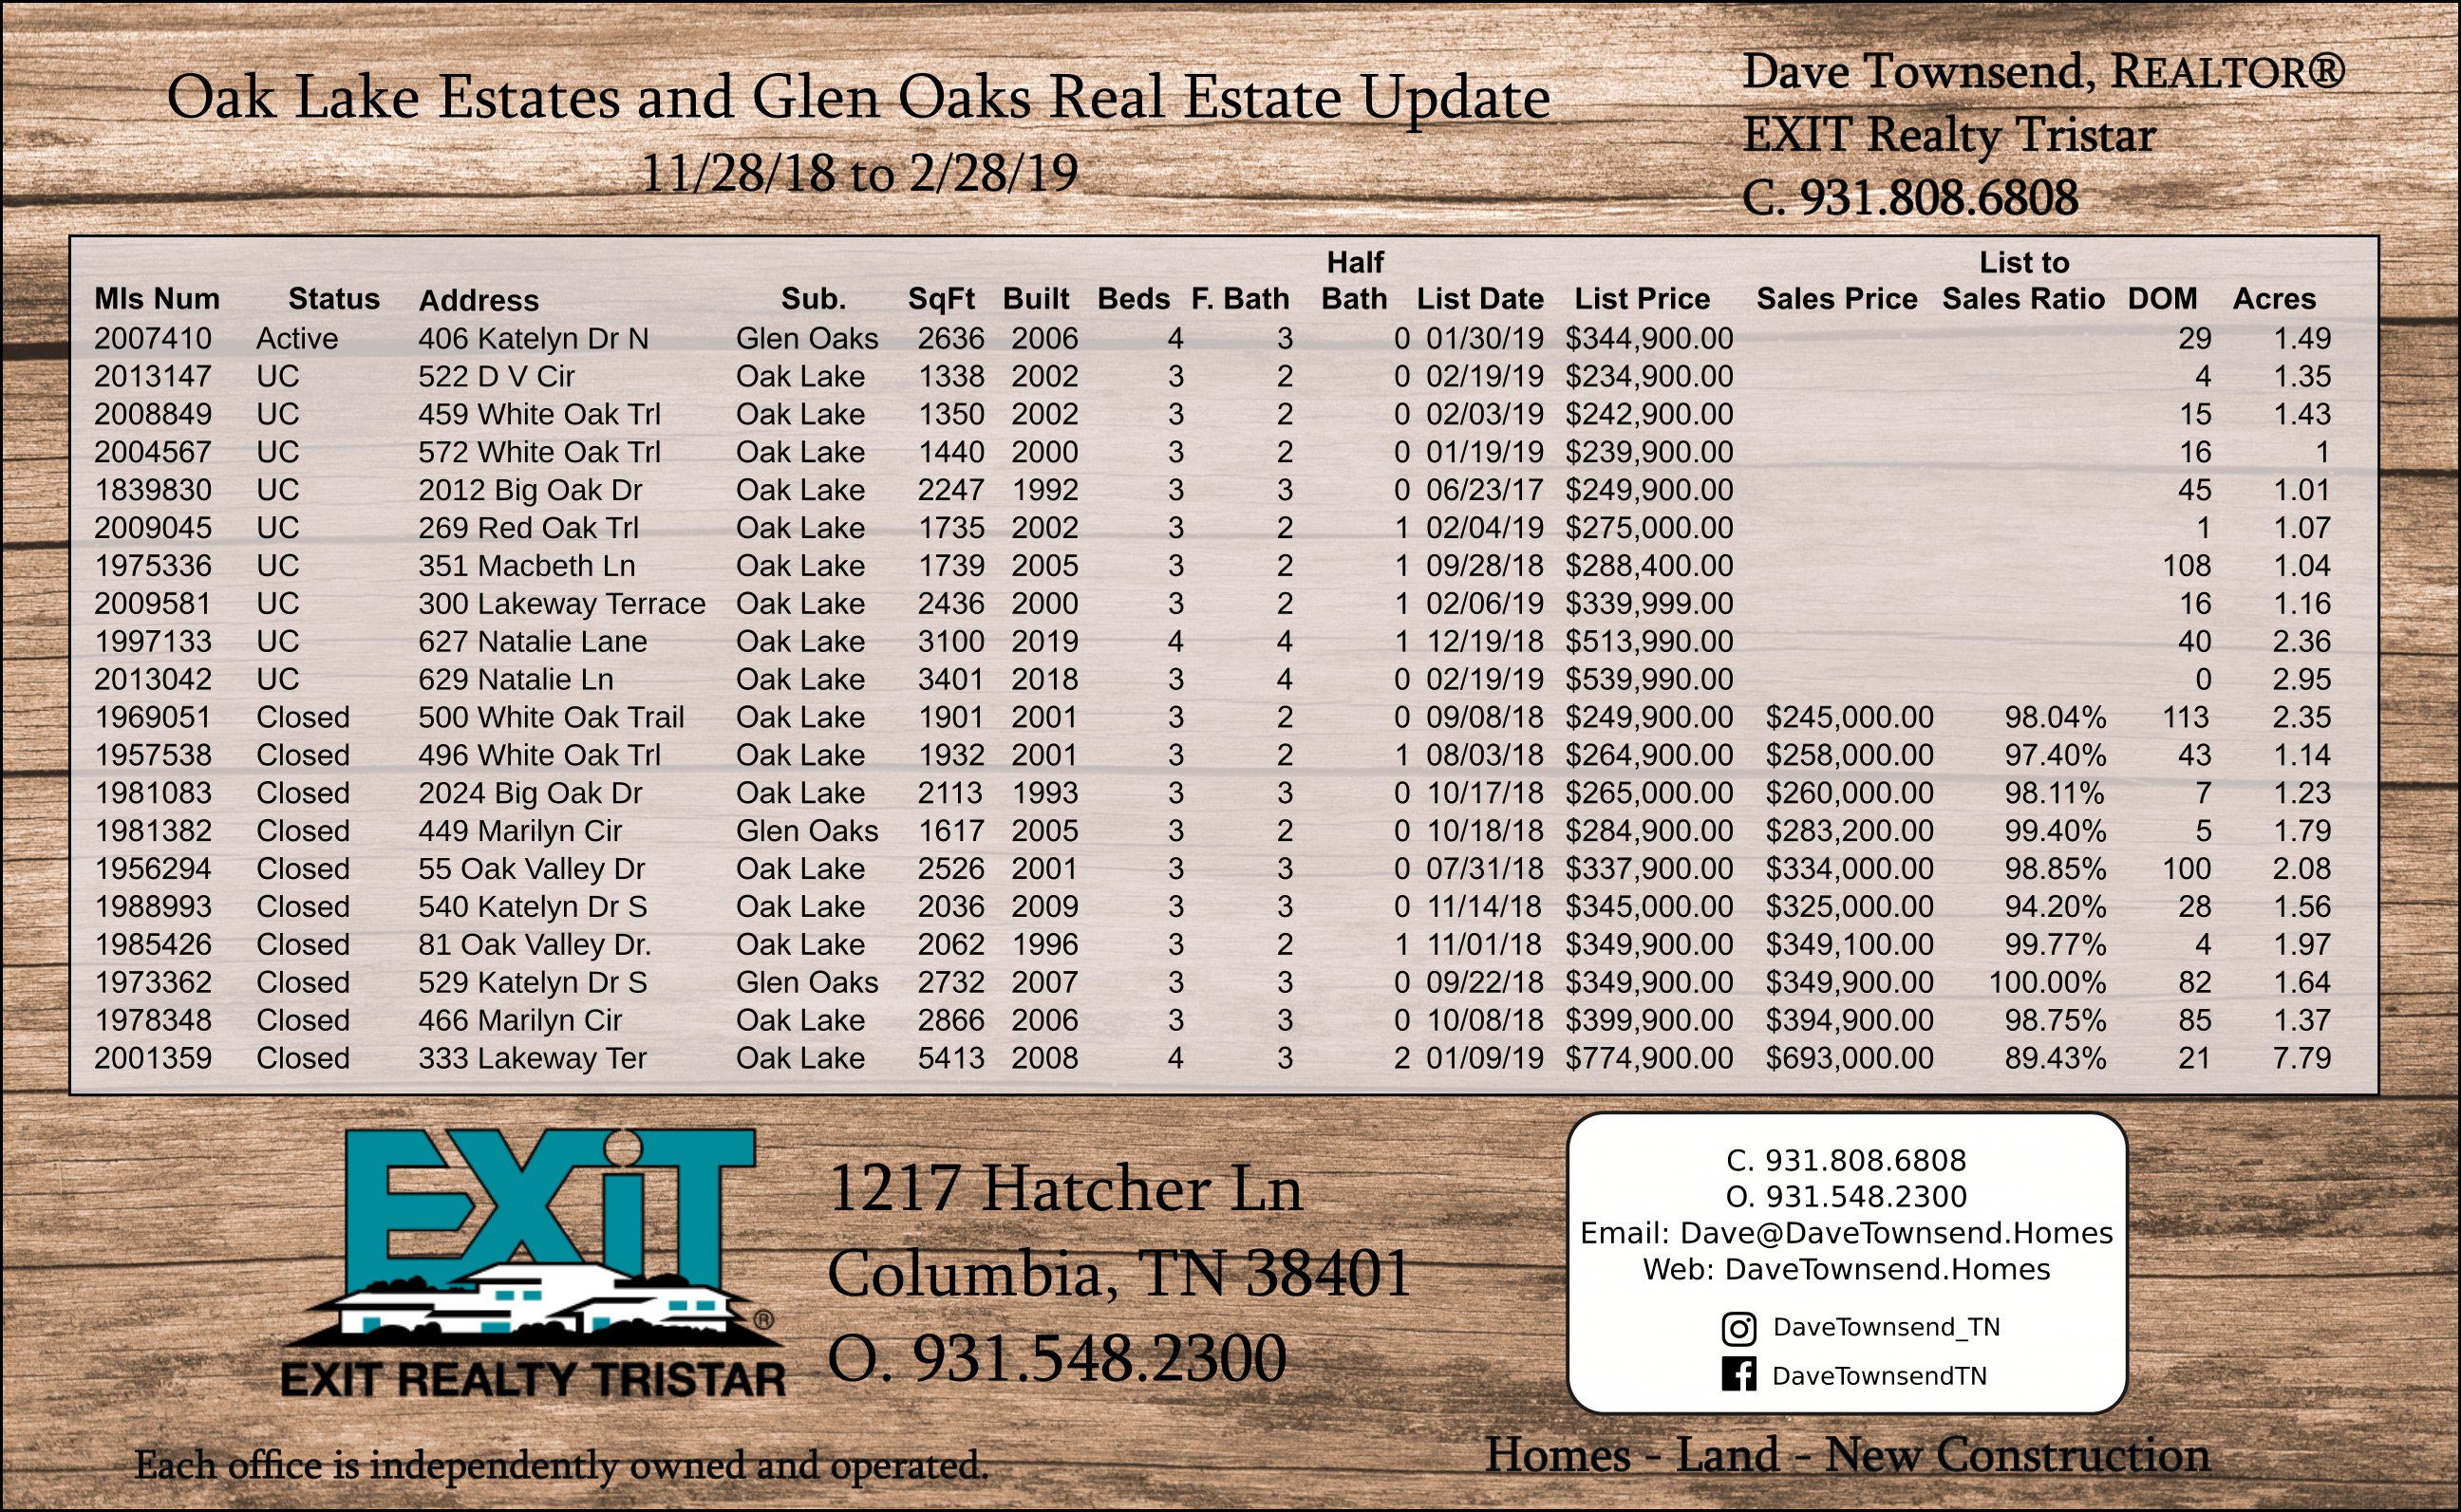 Oak Lake Estates and Glen Oaks Sales Update 2-28-2019